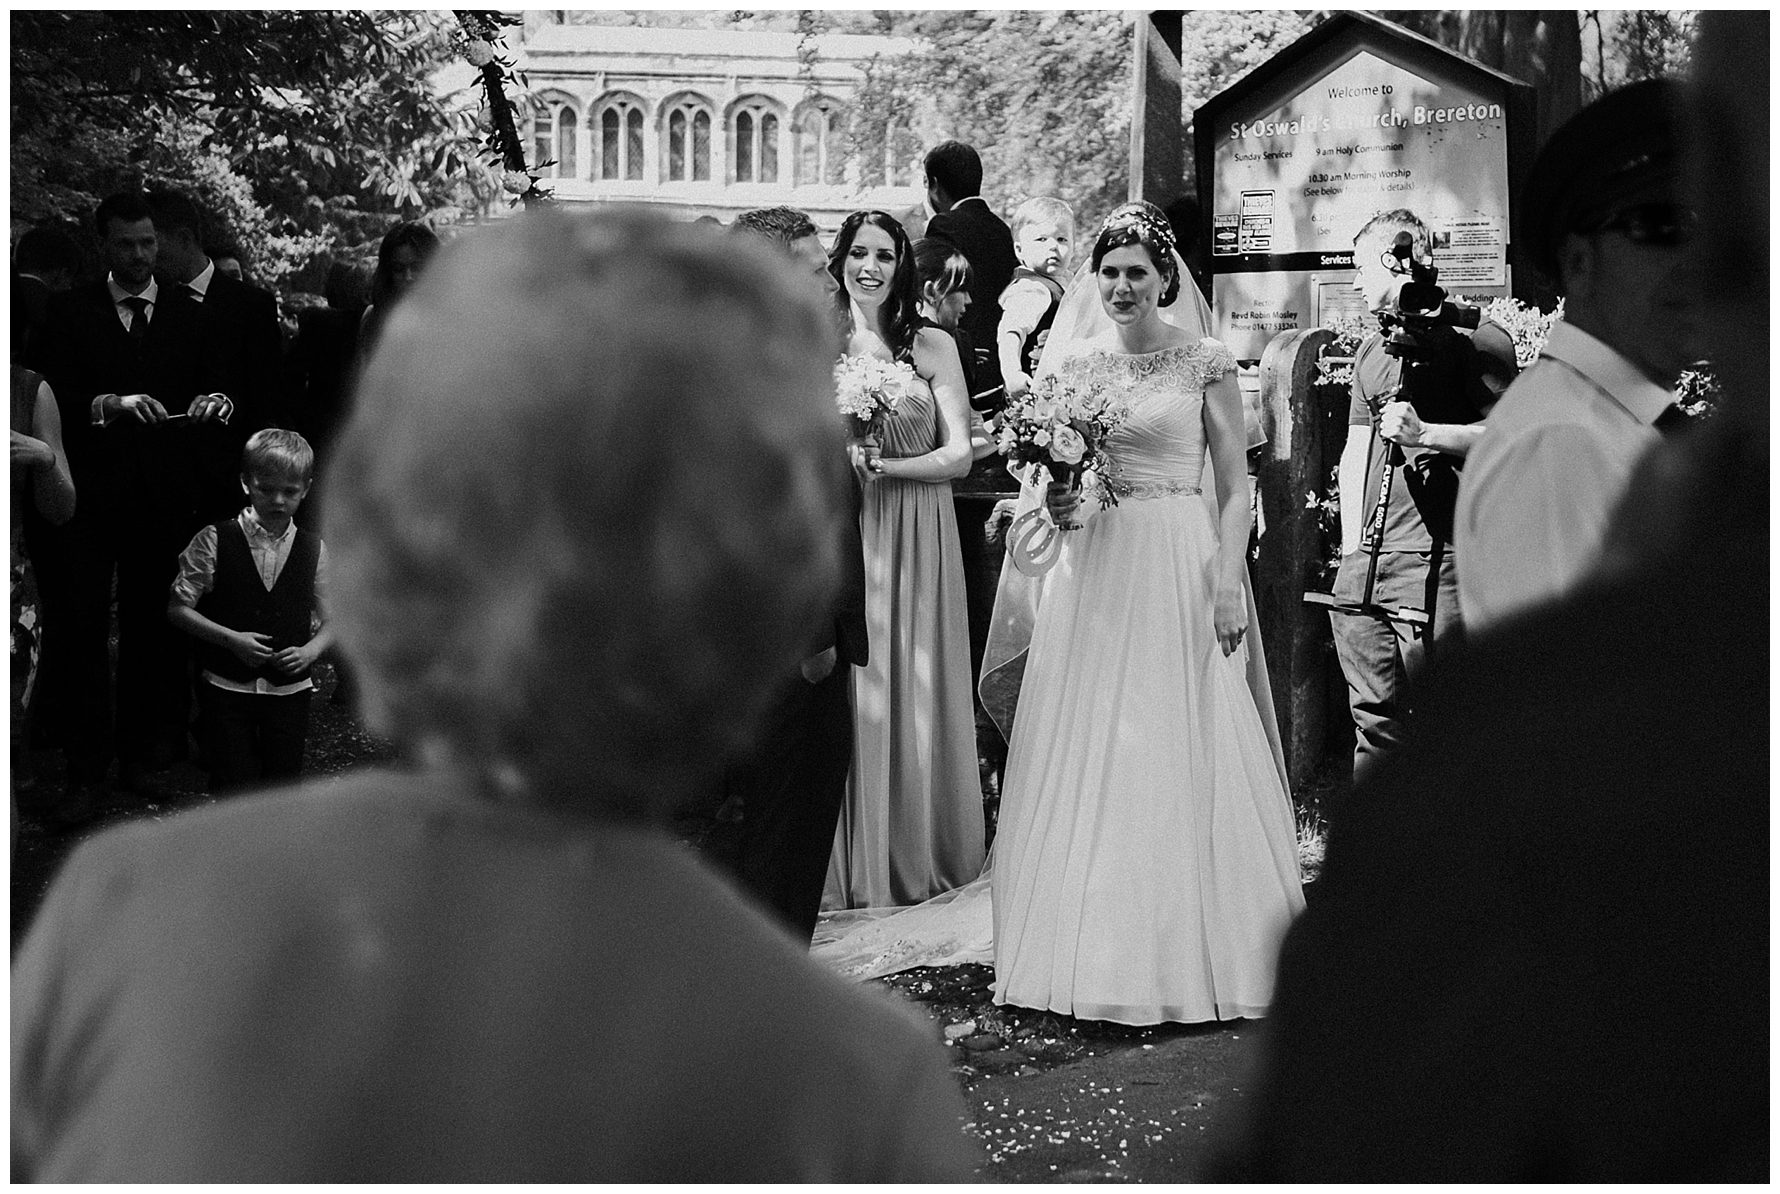 documentary-wedding-photography-bride-and-onlookers-at-st-oswalds-church-brereton-cheshire-louise-jacob